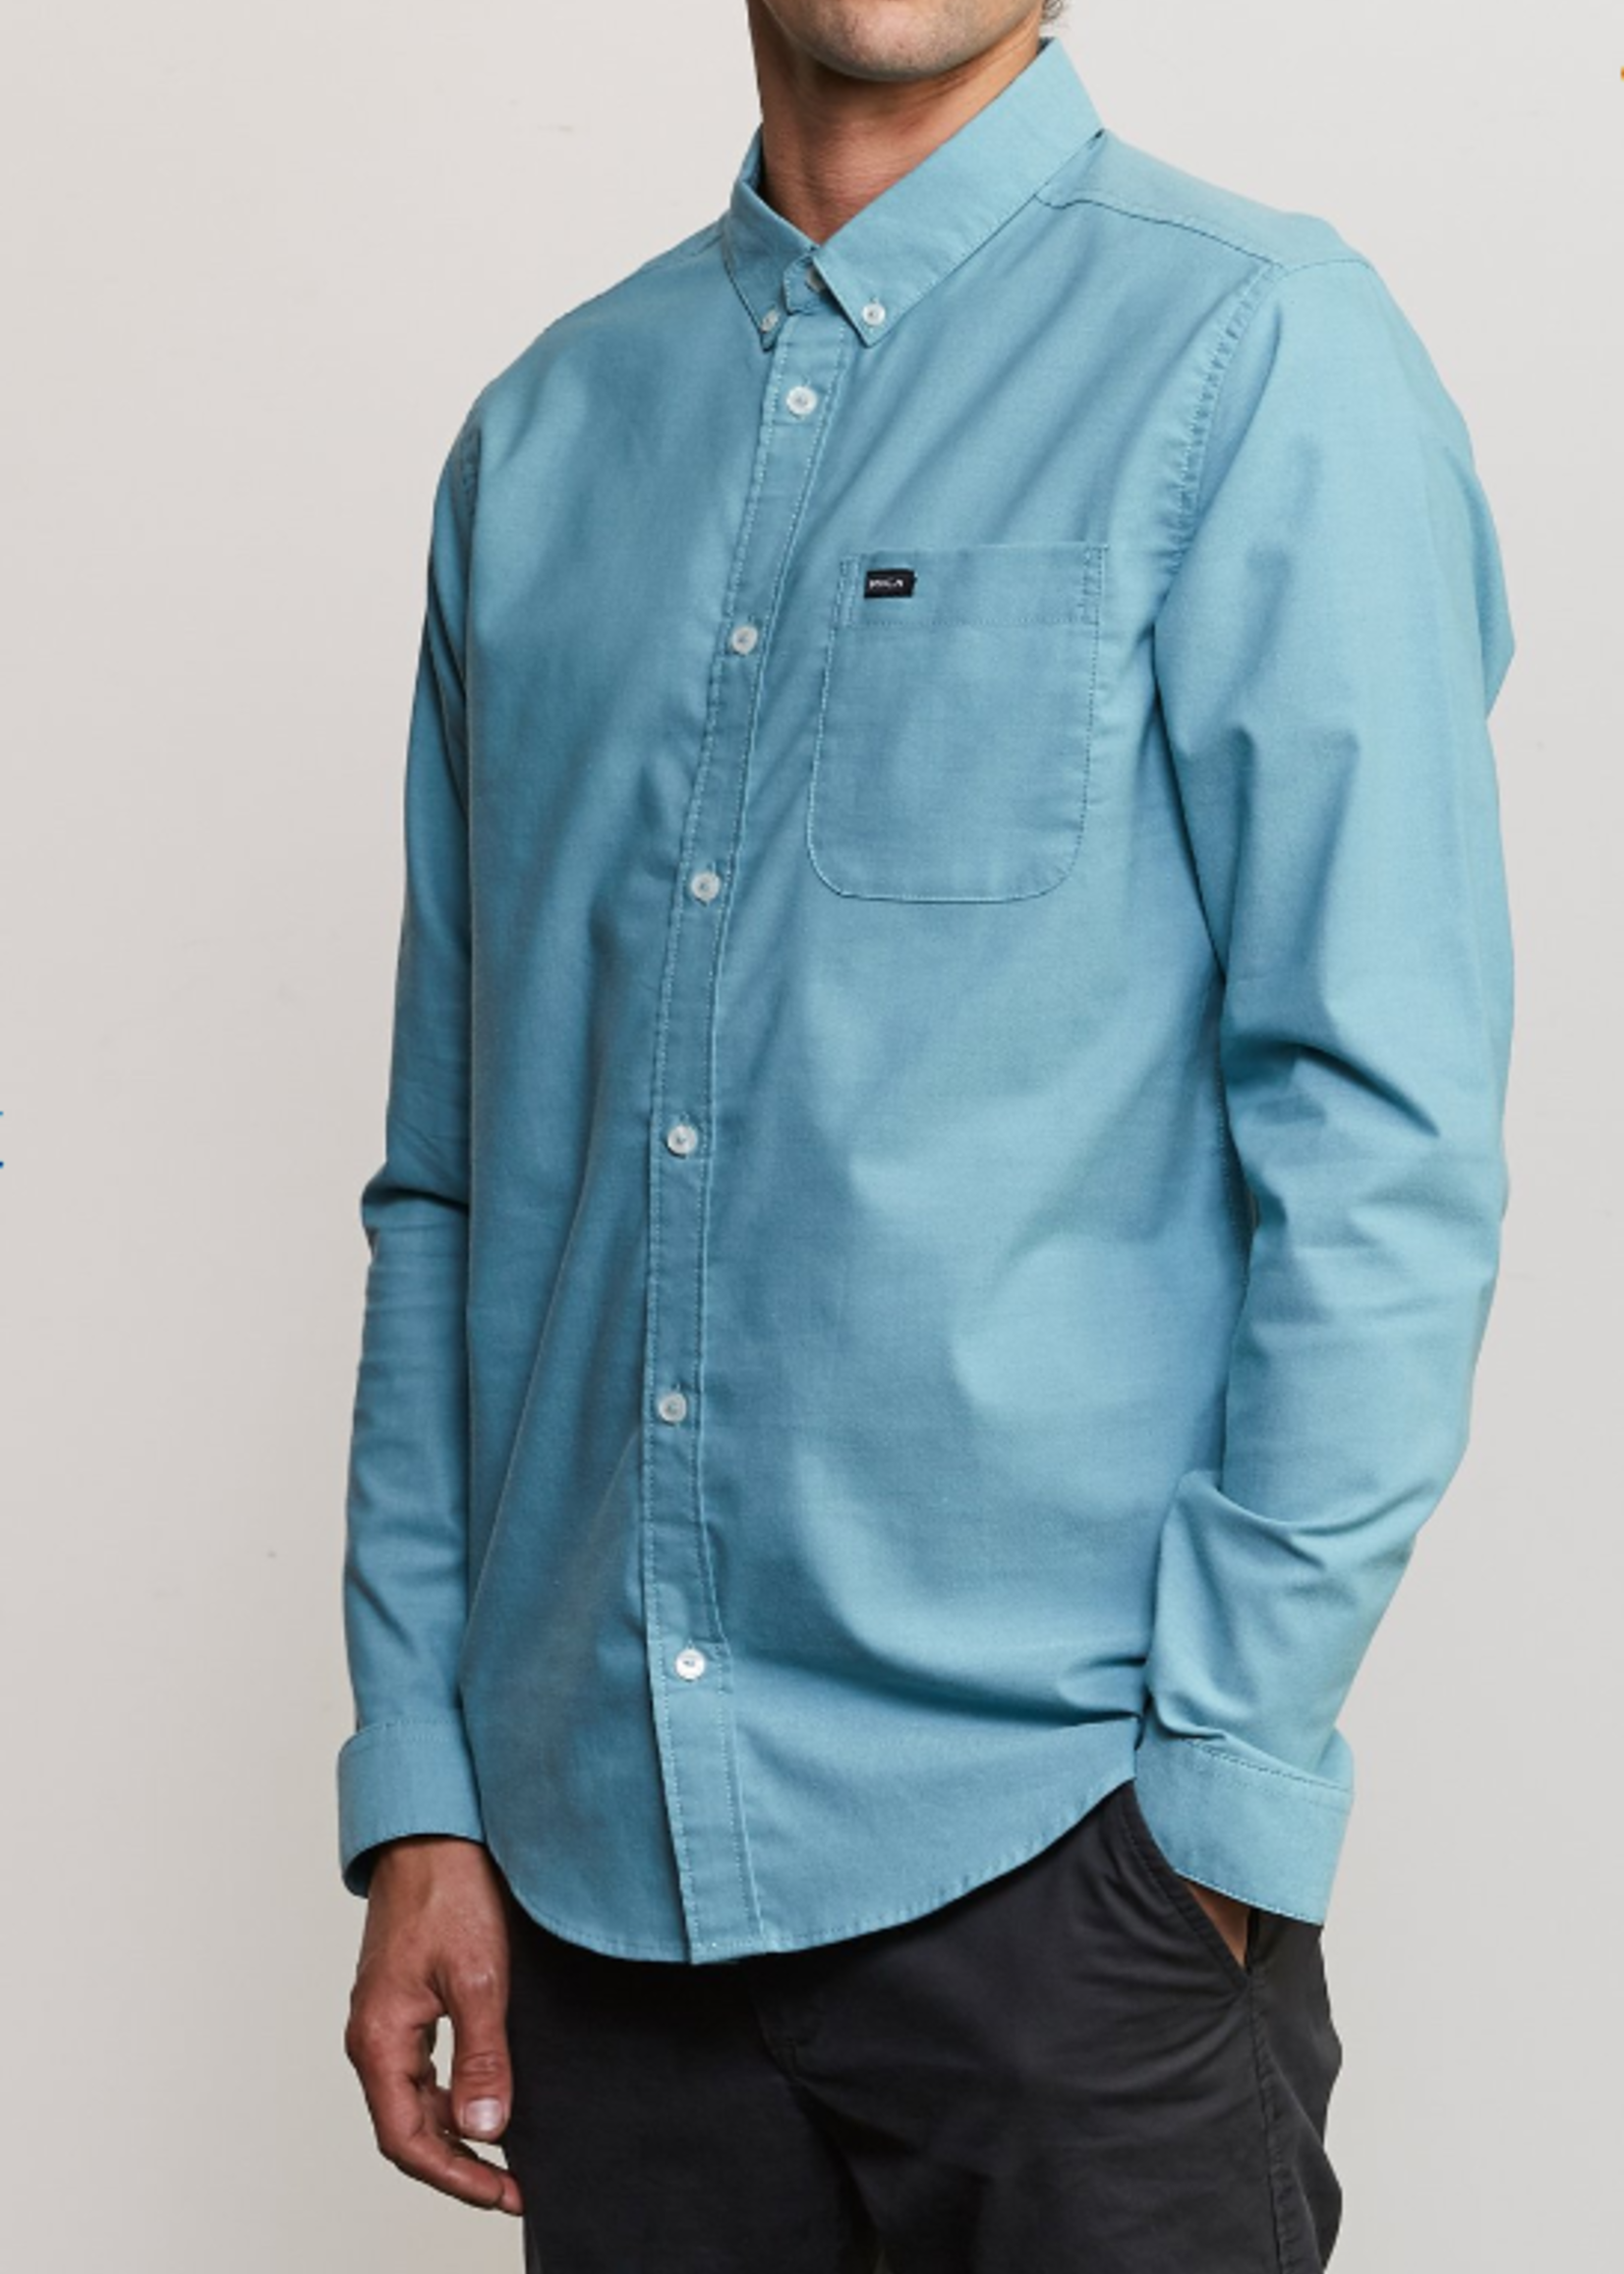 RVCA That'll Do Stretch Long Sleeve Woven - Nile Blue